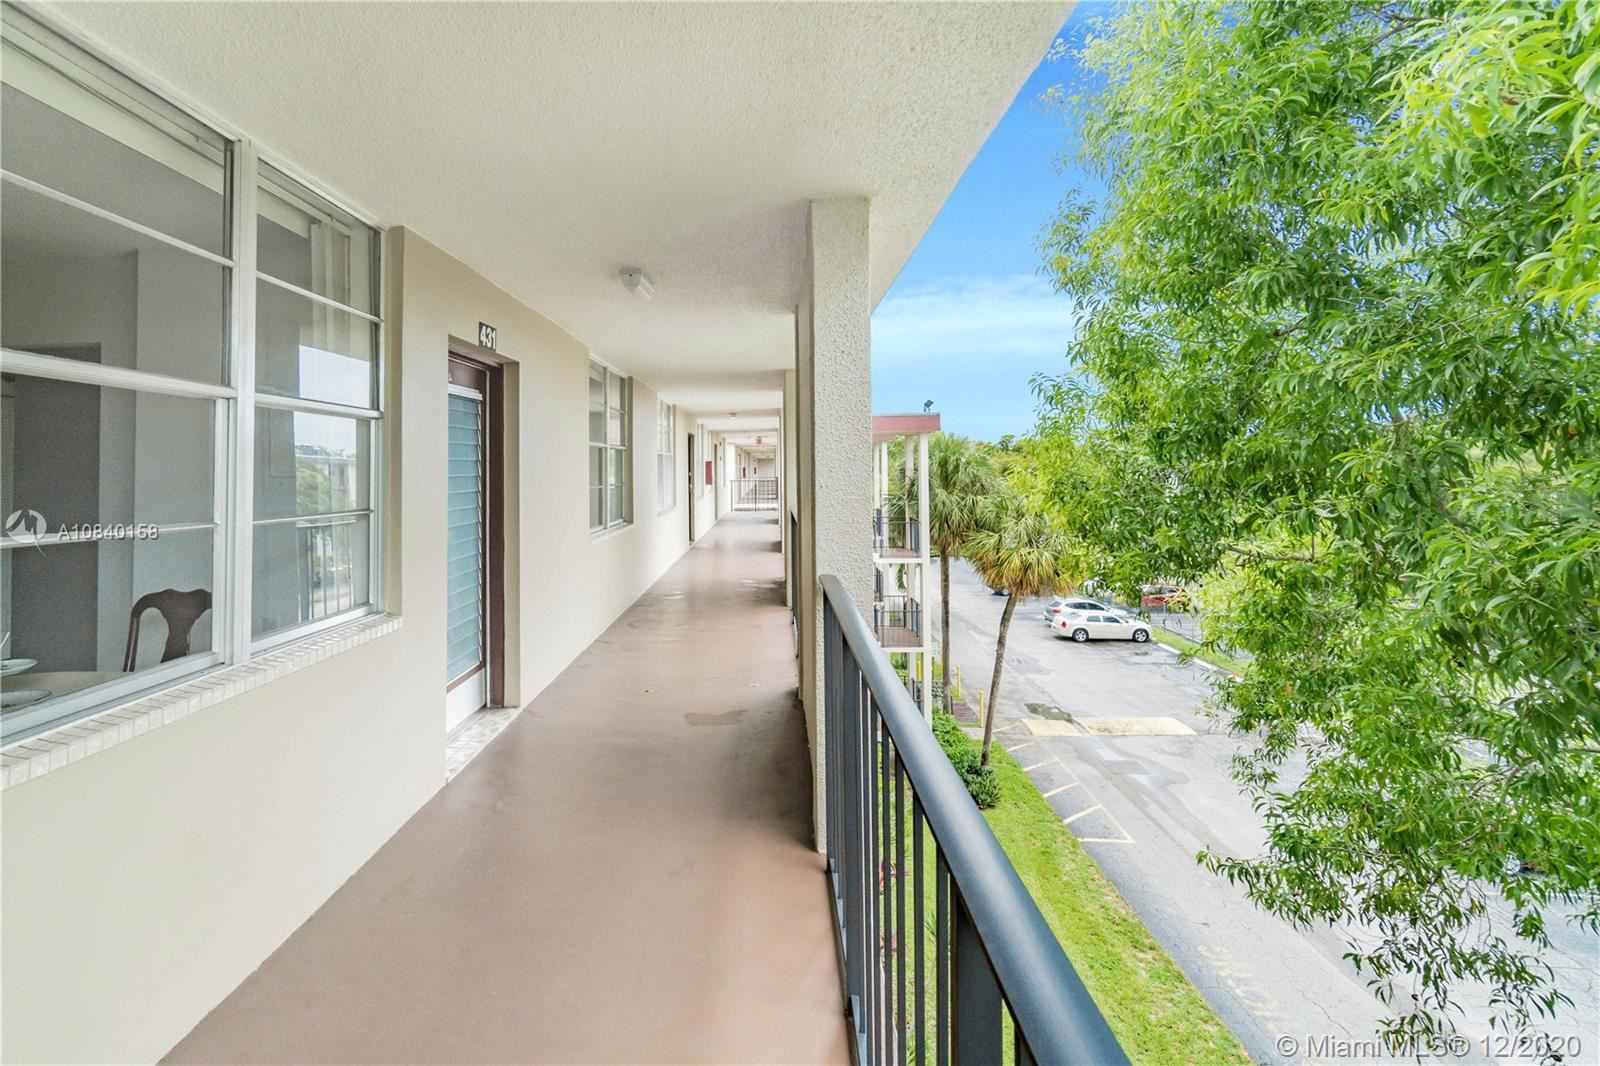 2649 NW 48th Ter #436, Lauderdale Lakes, FL 33313 - #: A10840158